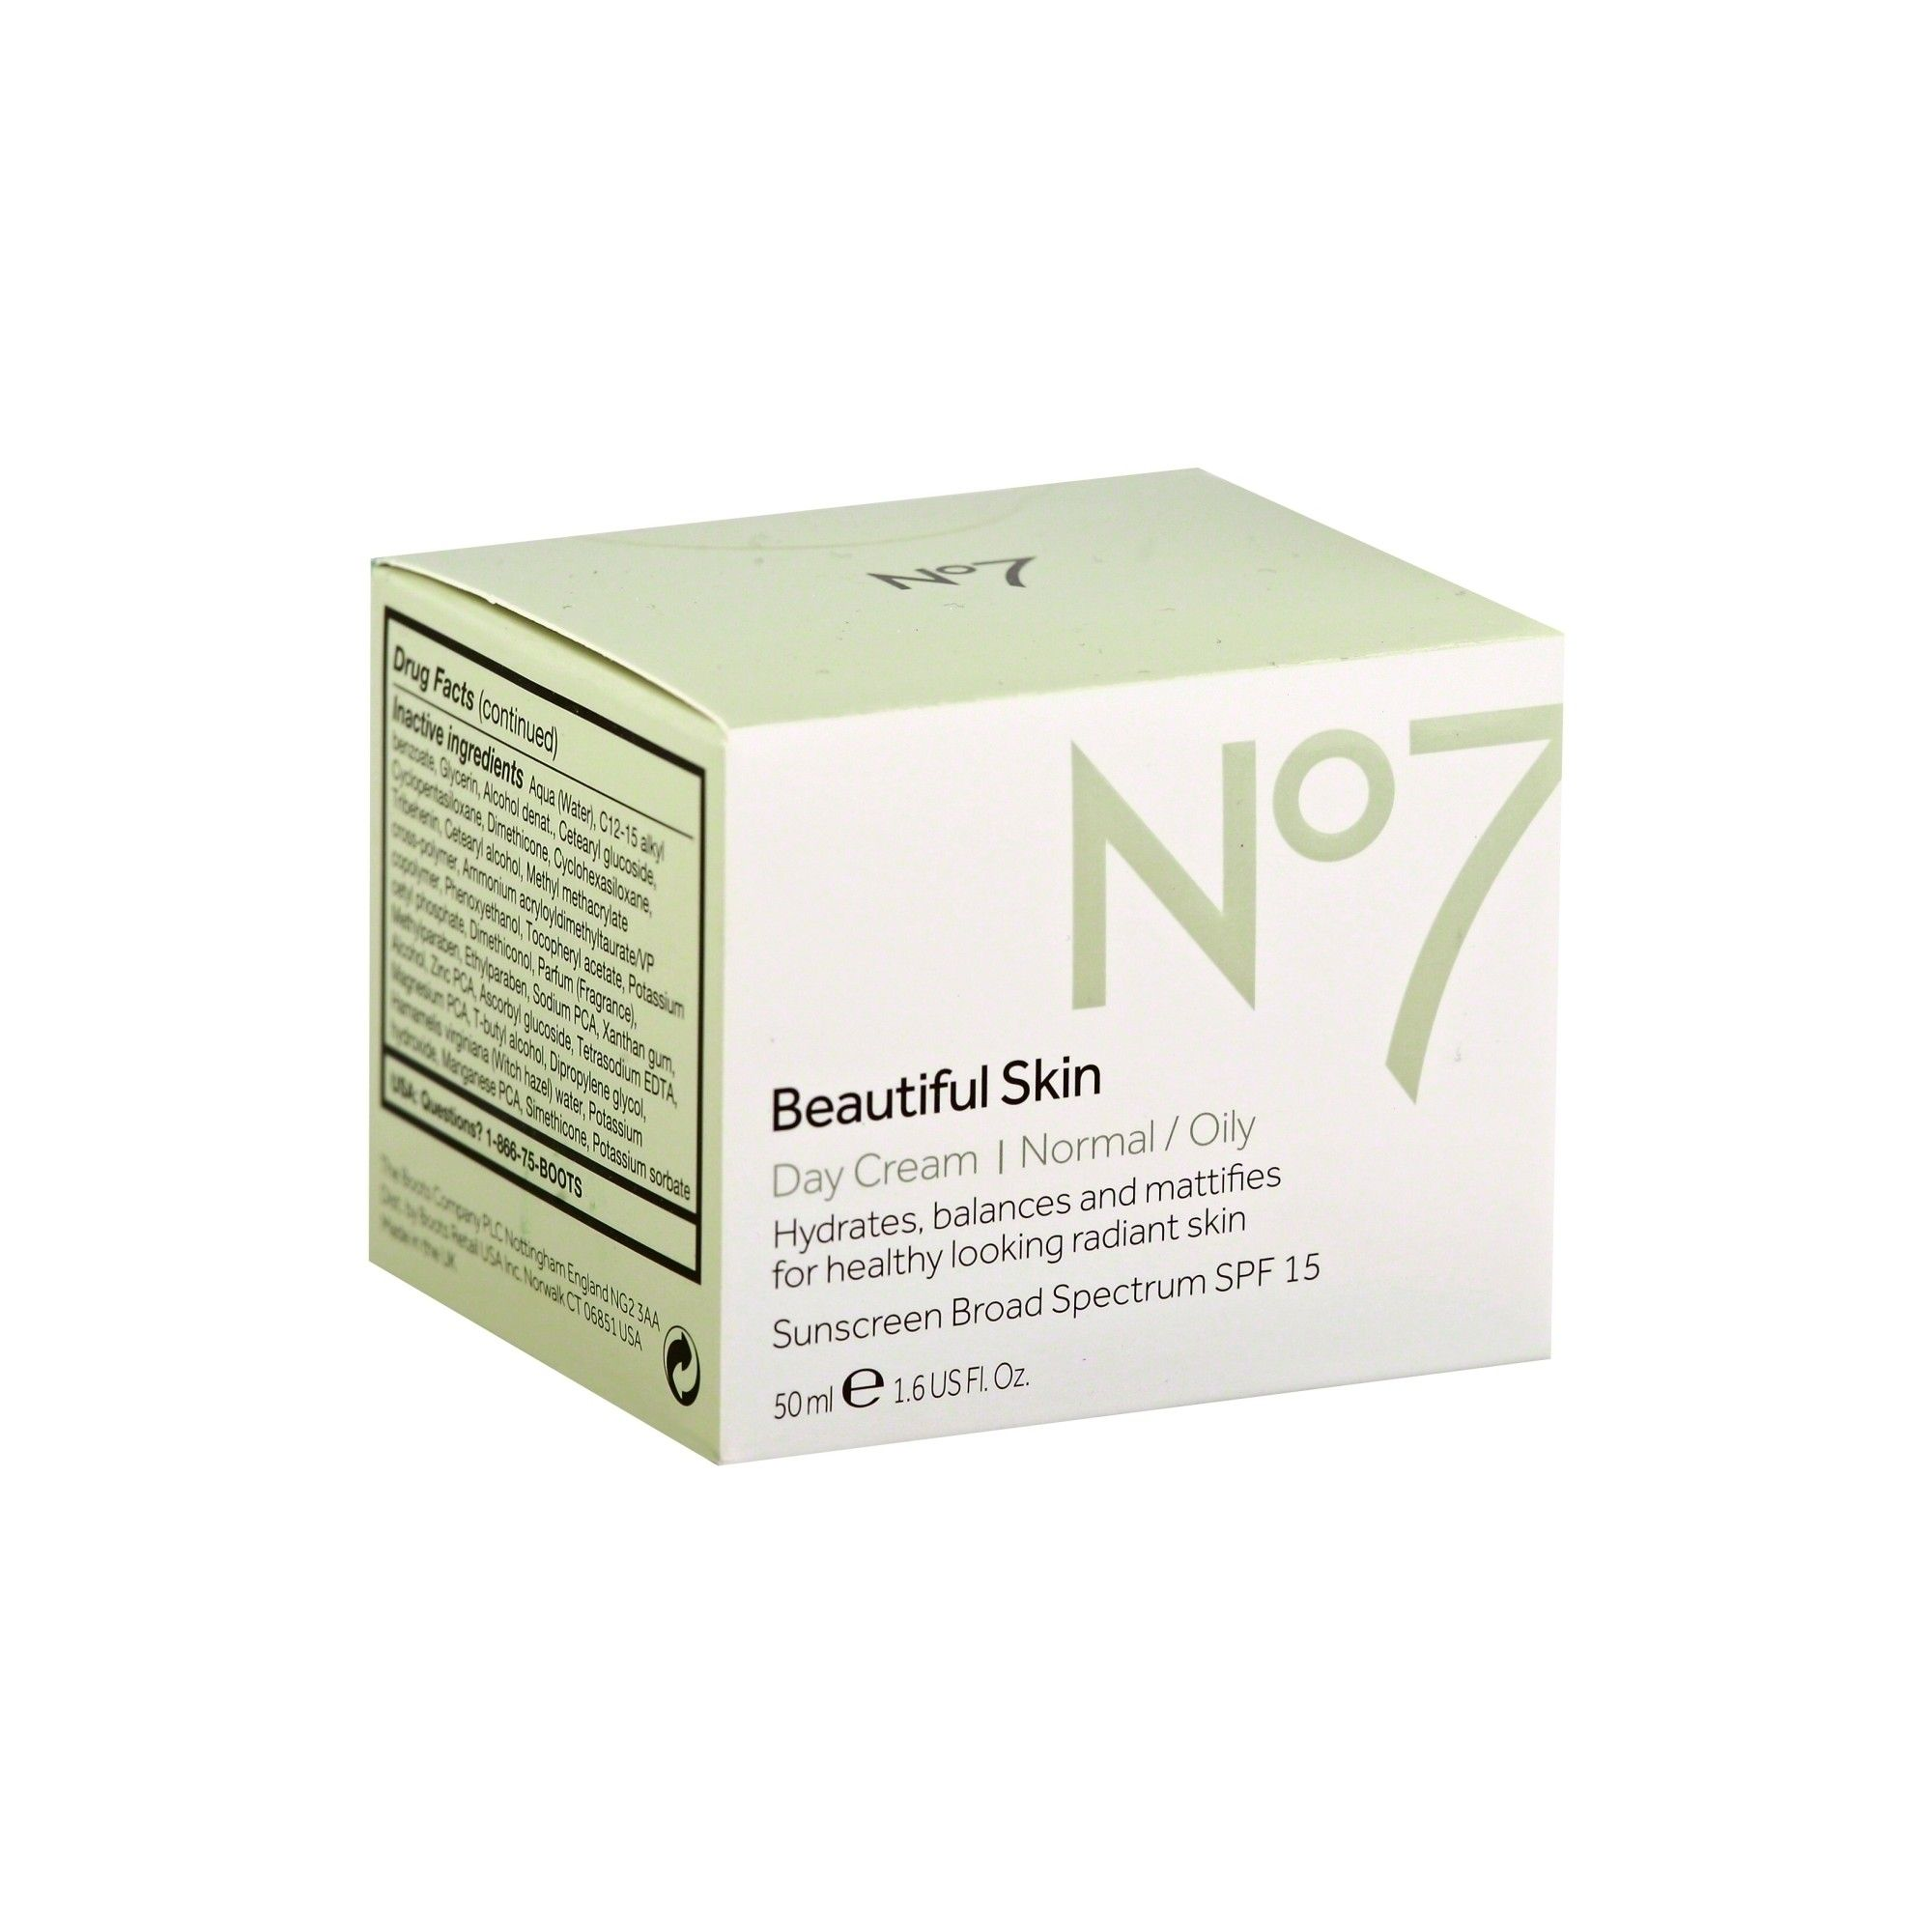 No7 Beautiful Skin Day Cream Normal/Oily Spf 15 - 1 6oz   Products